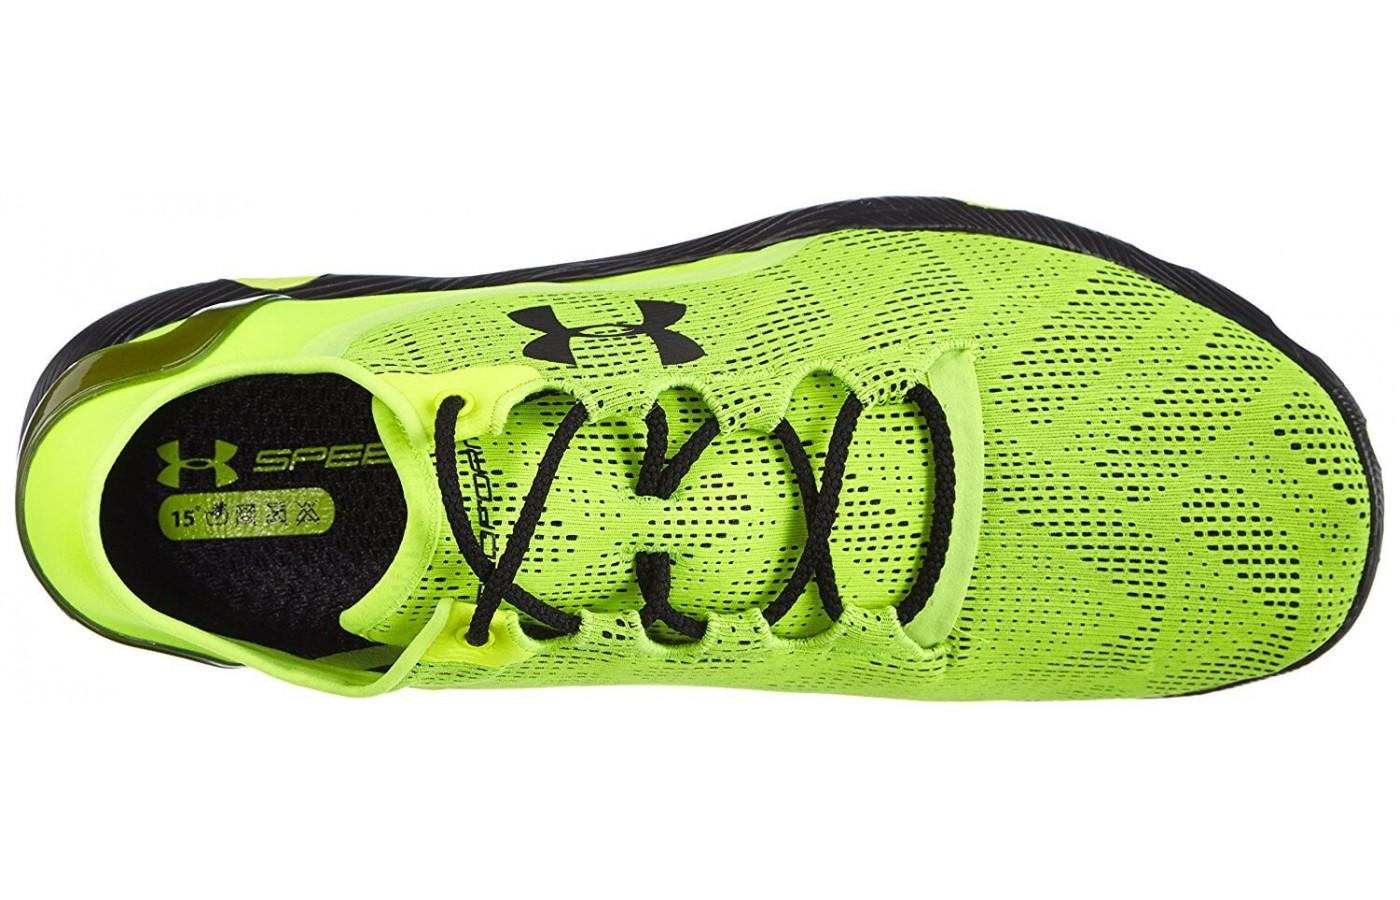 the Under Armour SpeedForm RC Vent has ArmourVent mesh that is breathable, flexible, lightweight, and fast drying